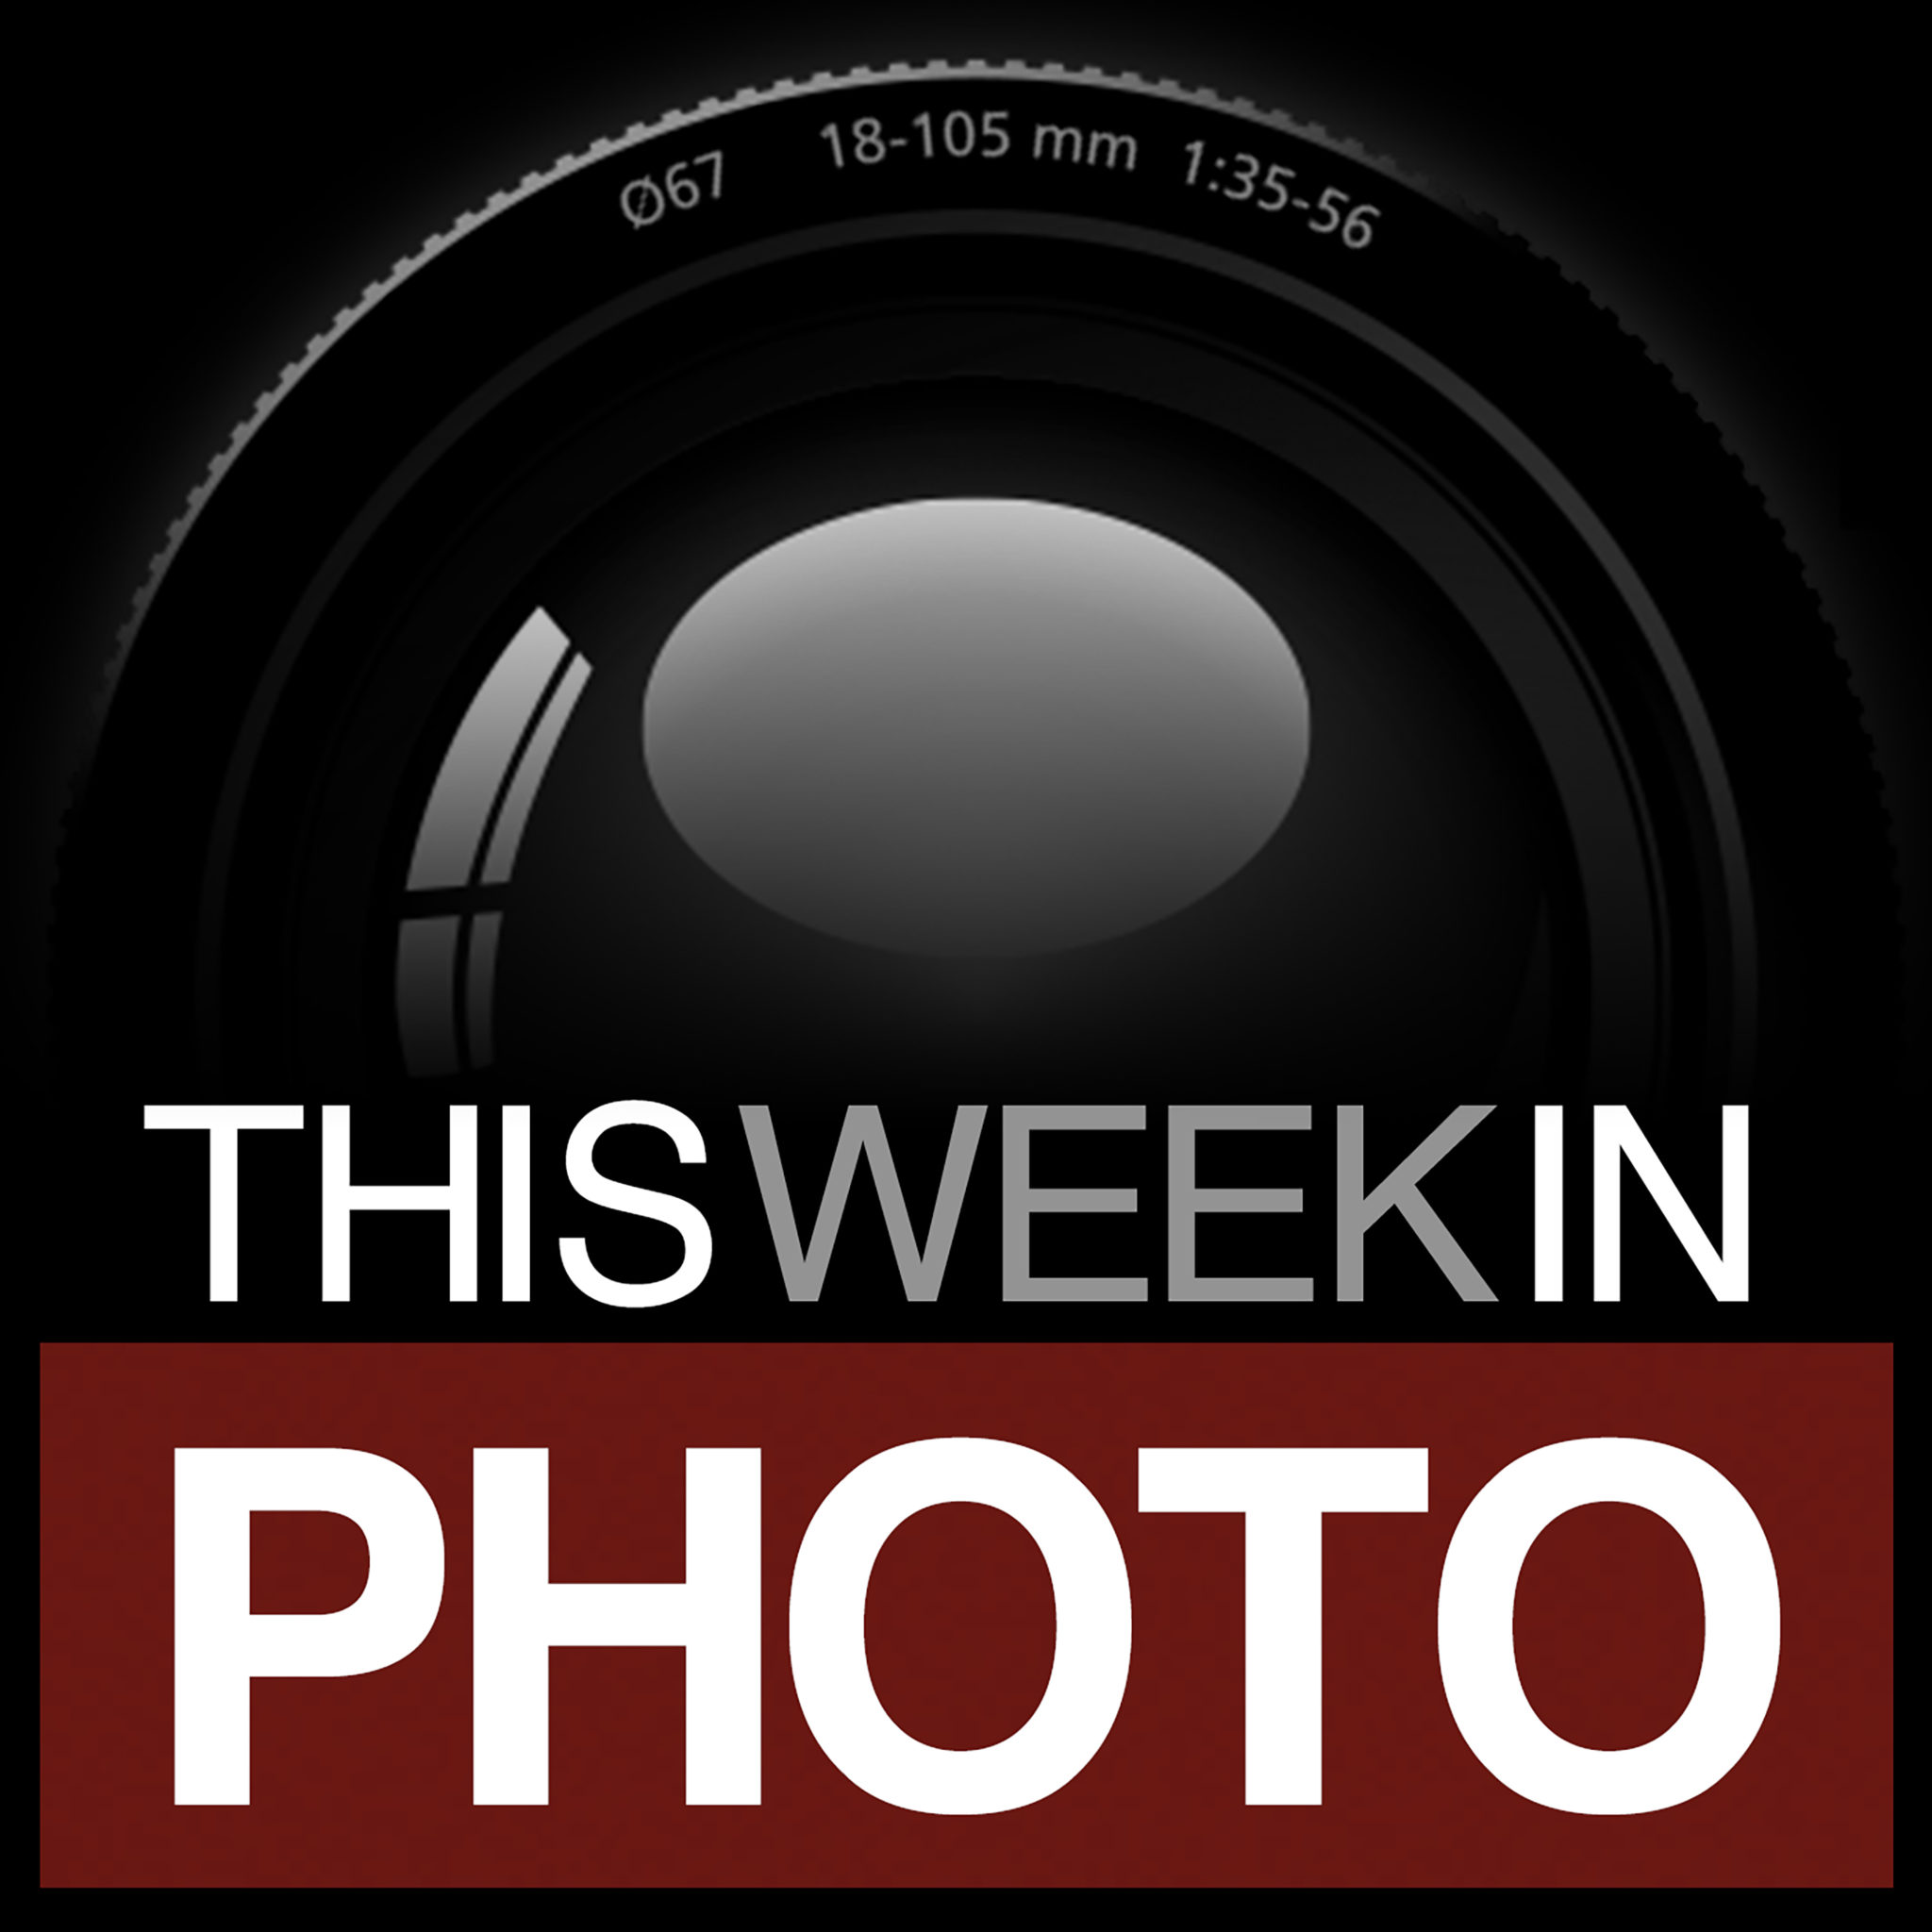 This Week in Photo (TWiP)